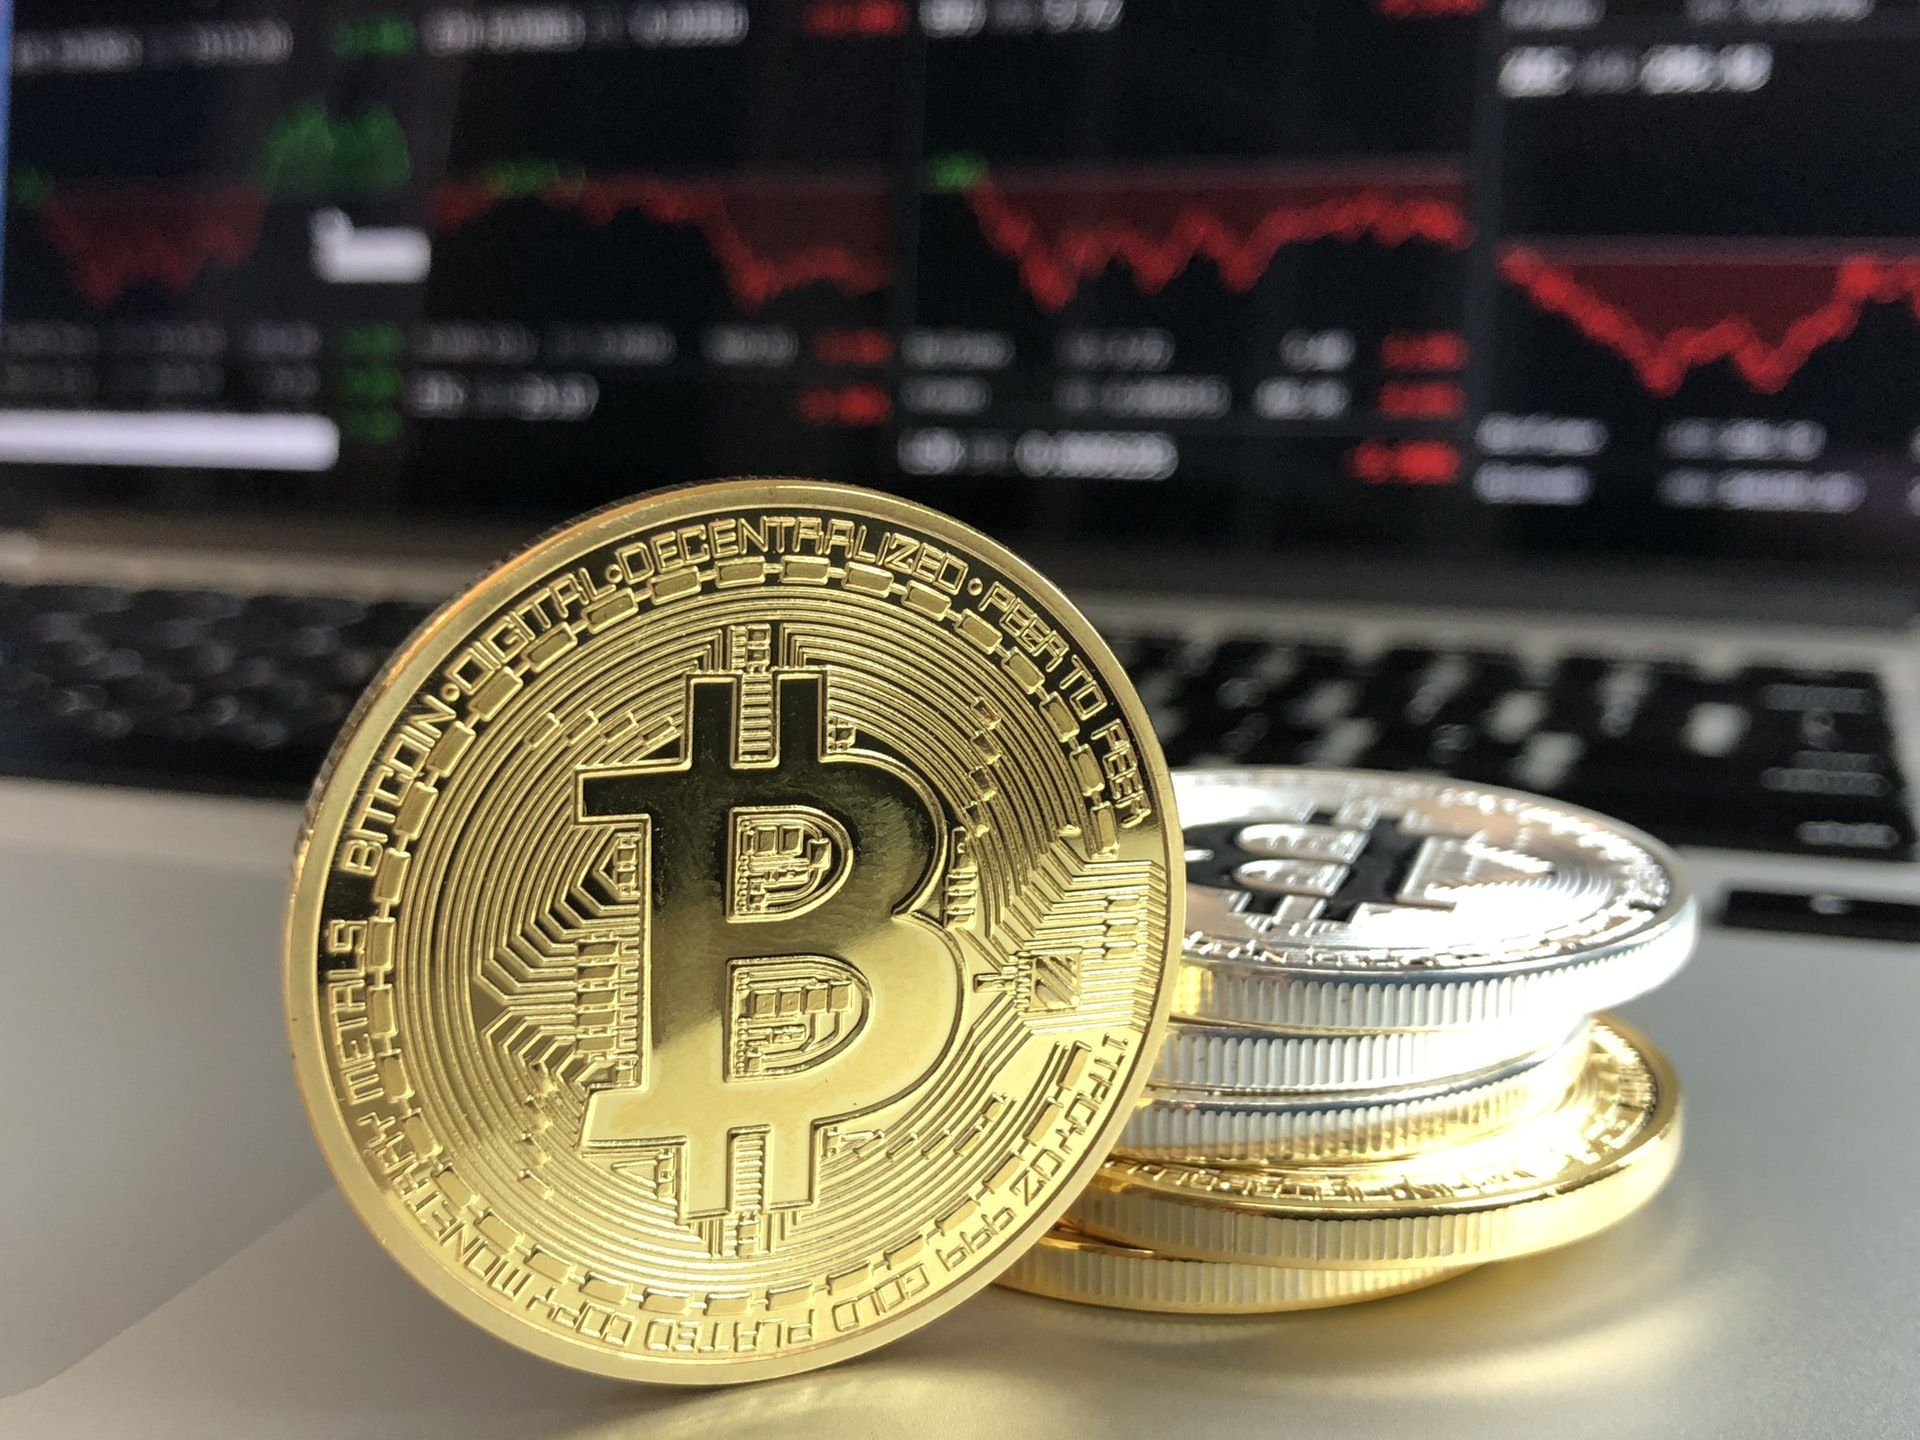 Cryptocurrency bitcoins and how to buy bitcoin with square cash cryptocurrency bitcoins and how to buy bitcoin with square cash ccuart Image collections